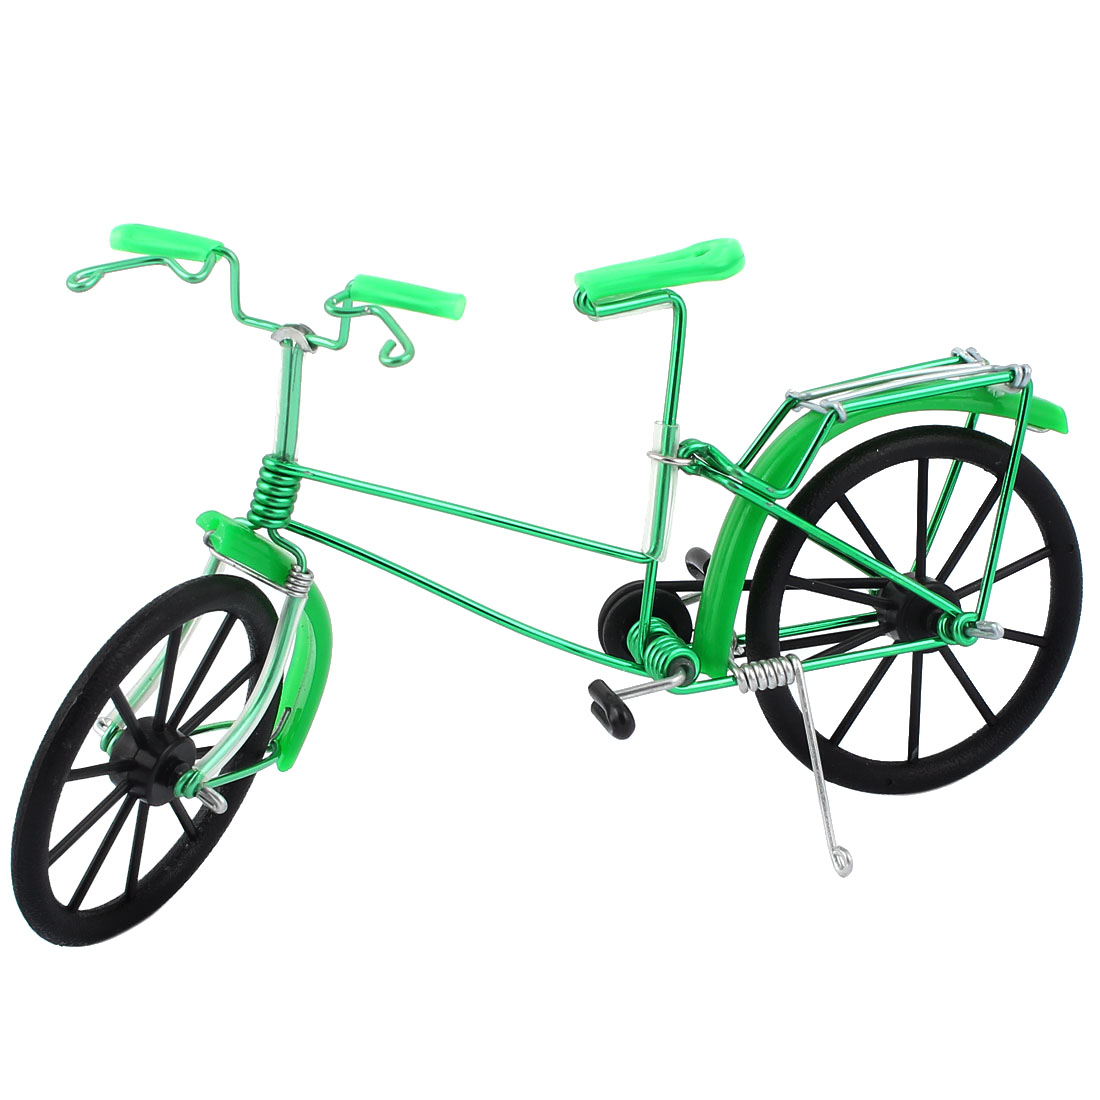 Hobby Cycling Collection Wire Crafts Die Cast Bicycle Bike Model Replica Toy Green